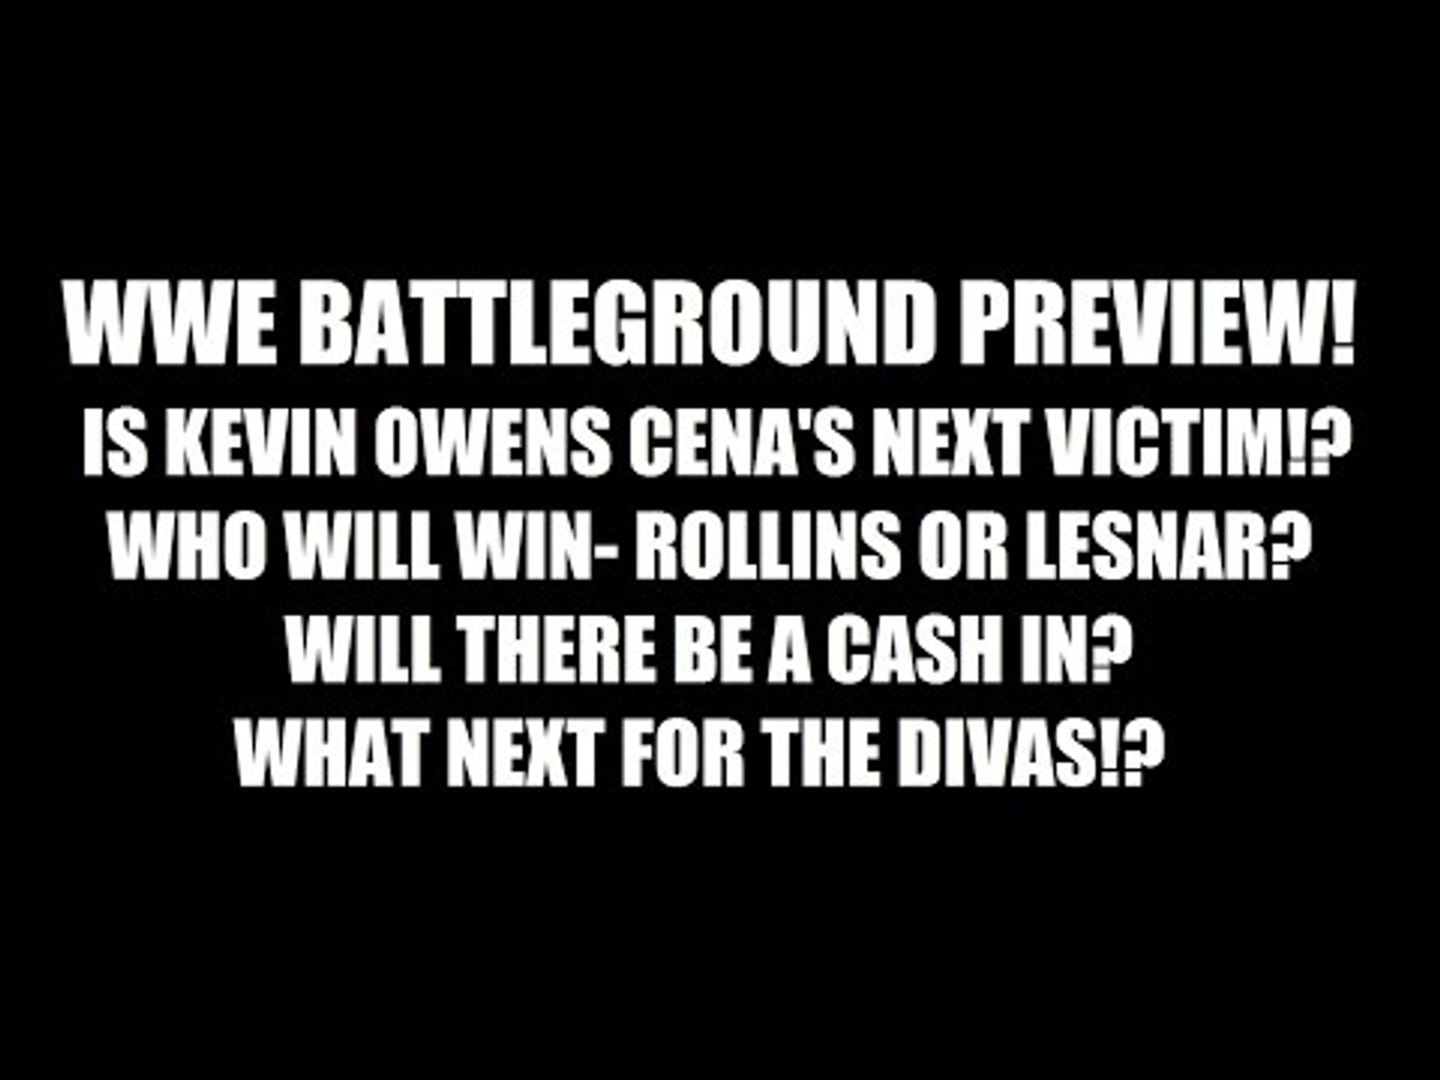 WWE Battleground Preview! Is Owens Cena's Next Victim? Lesnar or Rollins? Cash In? Daily Squash